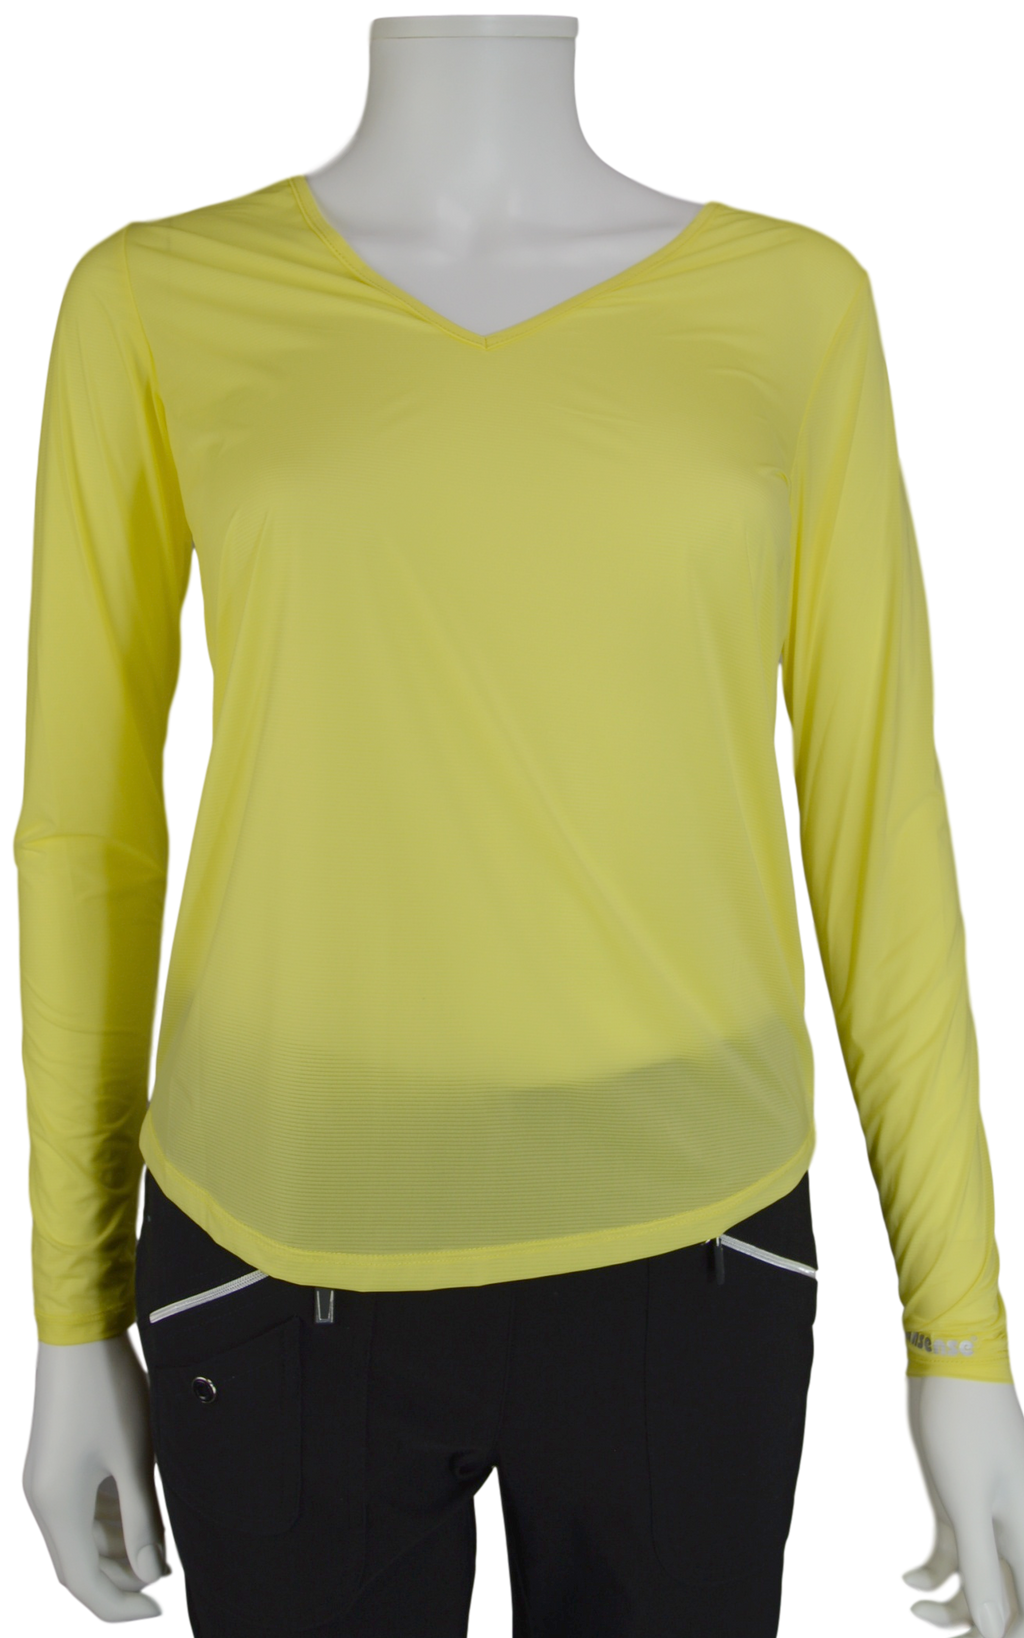 Jamie Sadock Gigabryte Yellow Sunsense Long Sleeve V Neck Shirt - UPF 30